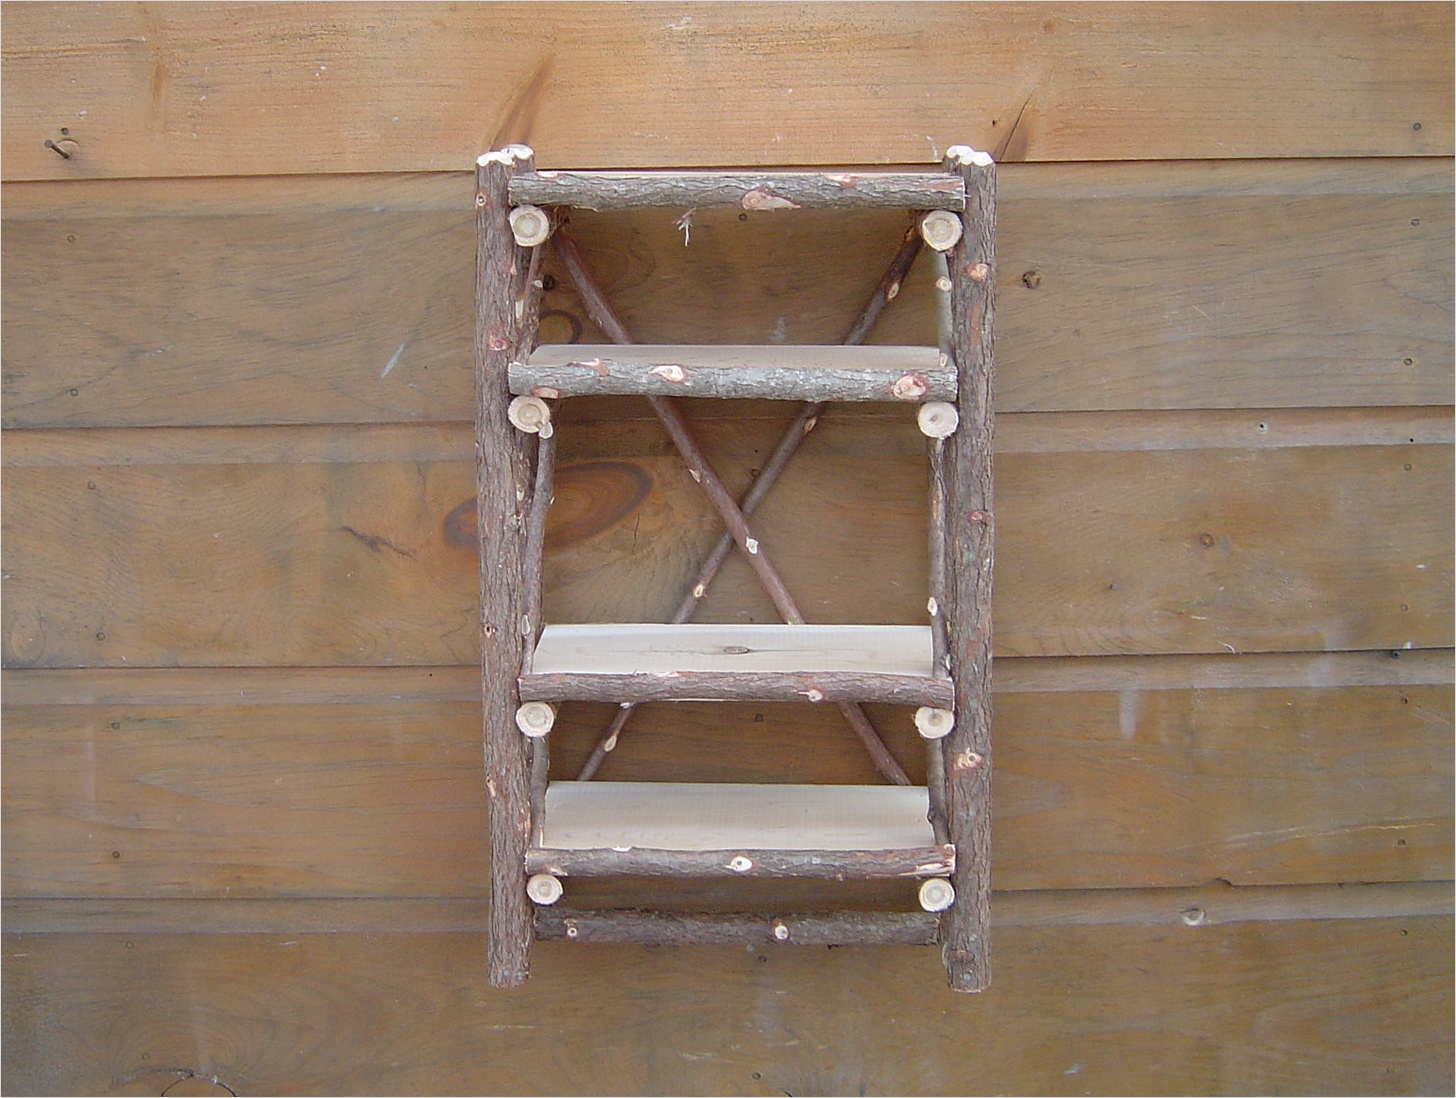 44 Creative Ideas Rustic Bathroom Walls Shelf 92 Rustic Bathroom Wall Shelves 2